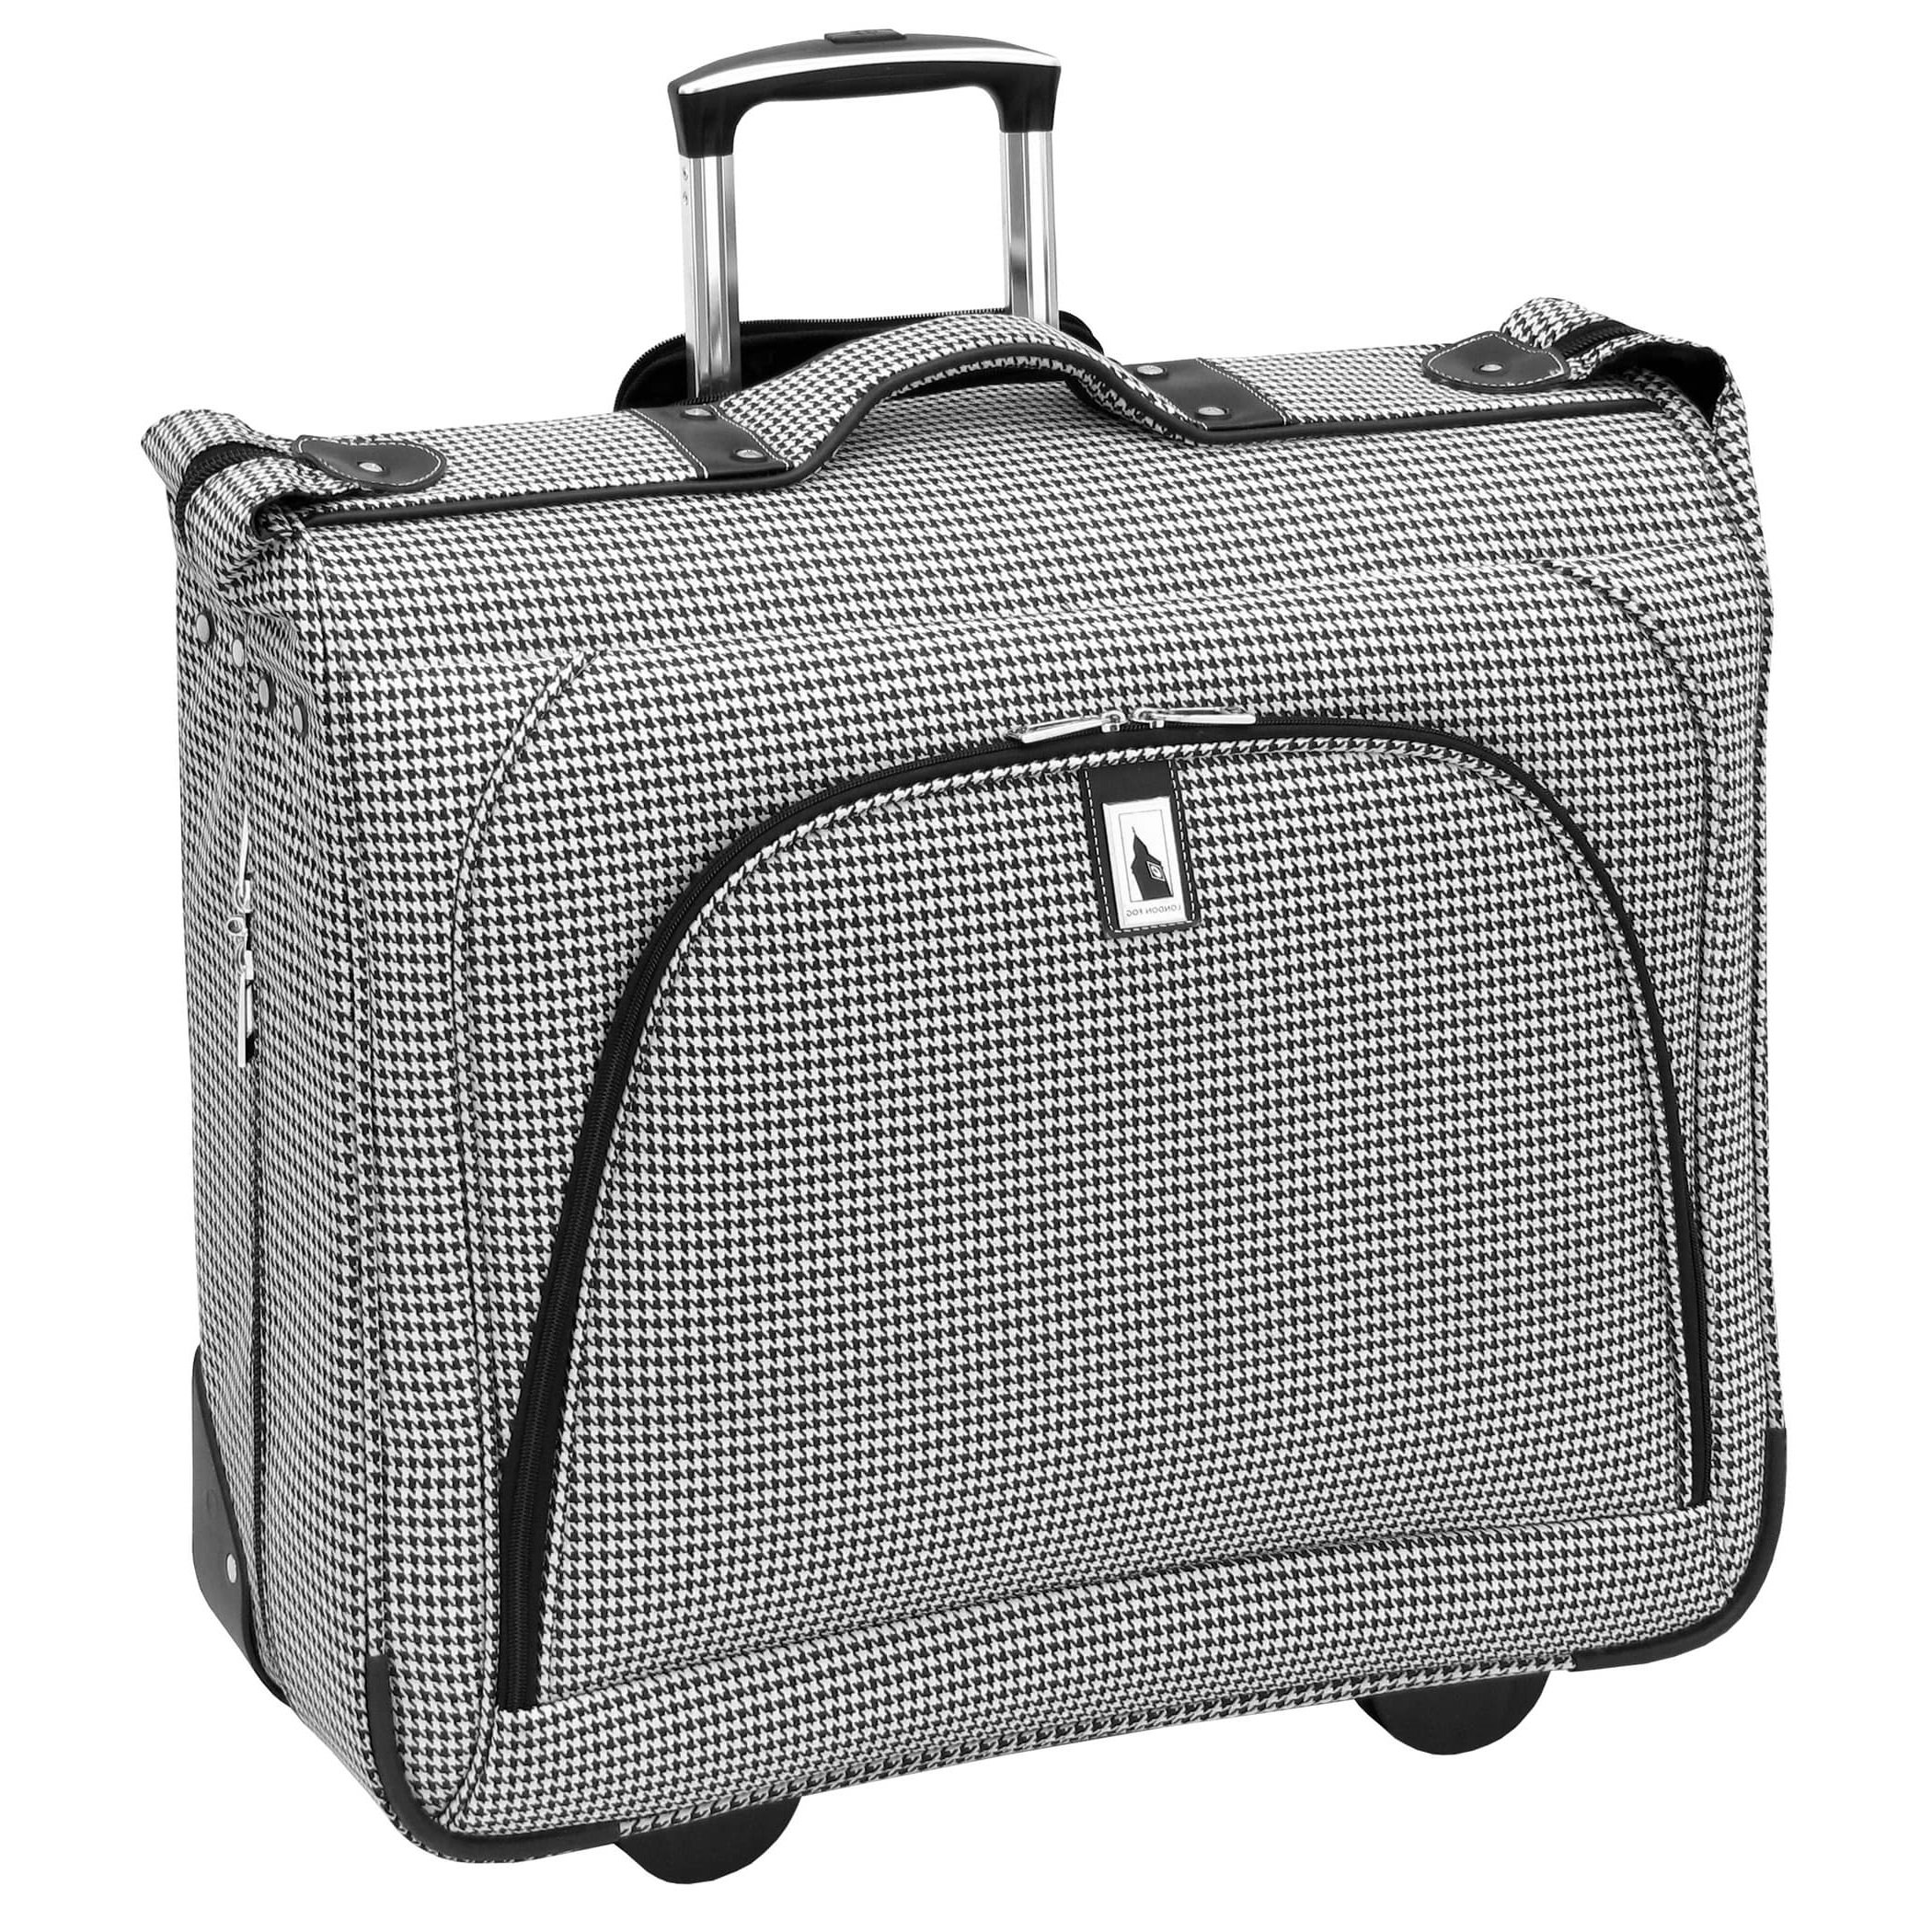 Exotic Hounds Tooth Motif Spinner Lightweight Expandable Carry On Luggage Suitcase, Soft Geometric Tribal Ikat Theme, Softsided, Fashion, Multi Compartment, Garment Travel Case, White, Black, Size 44'' by S & E